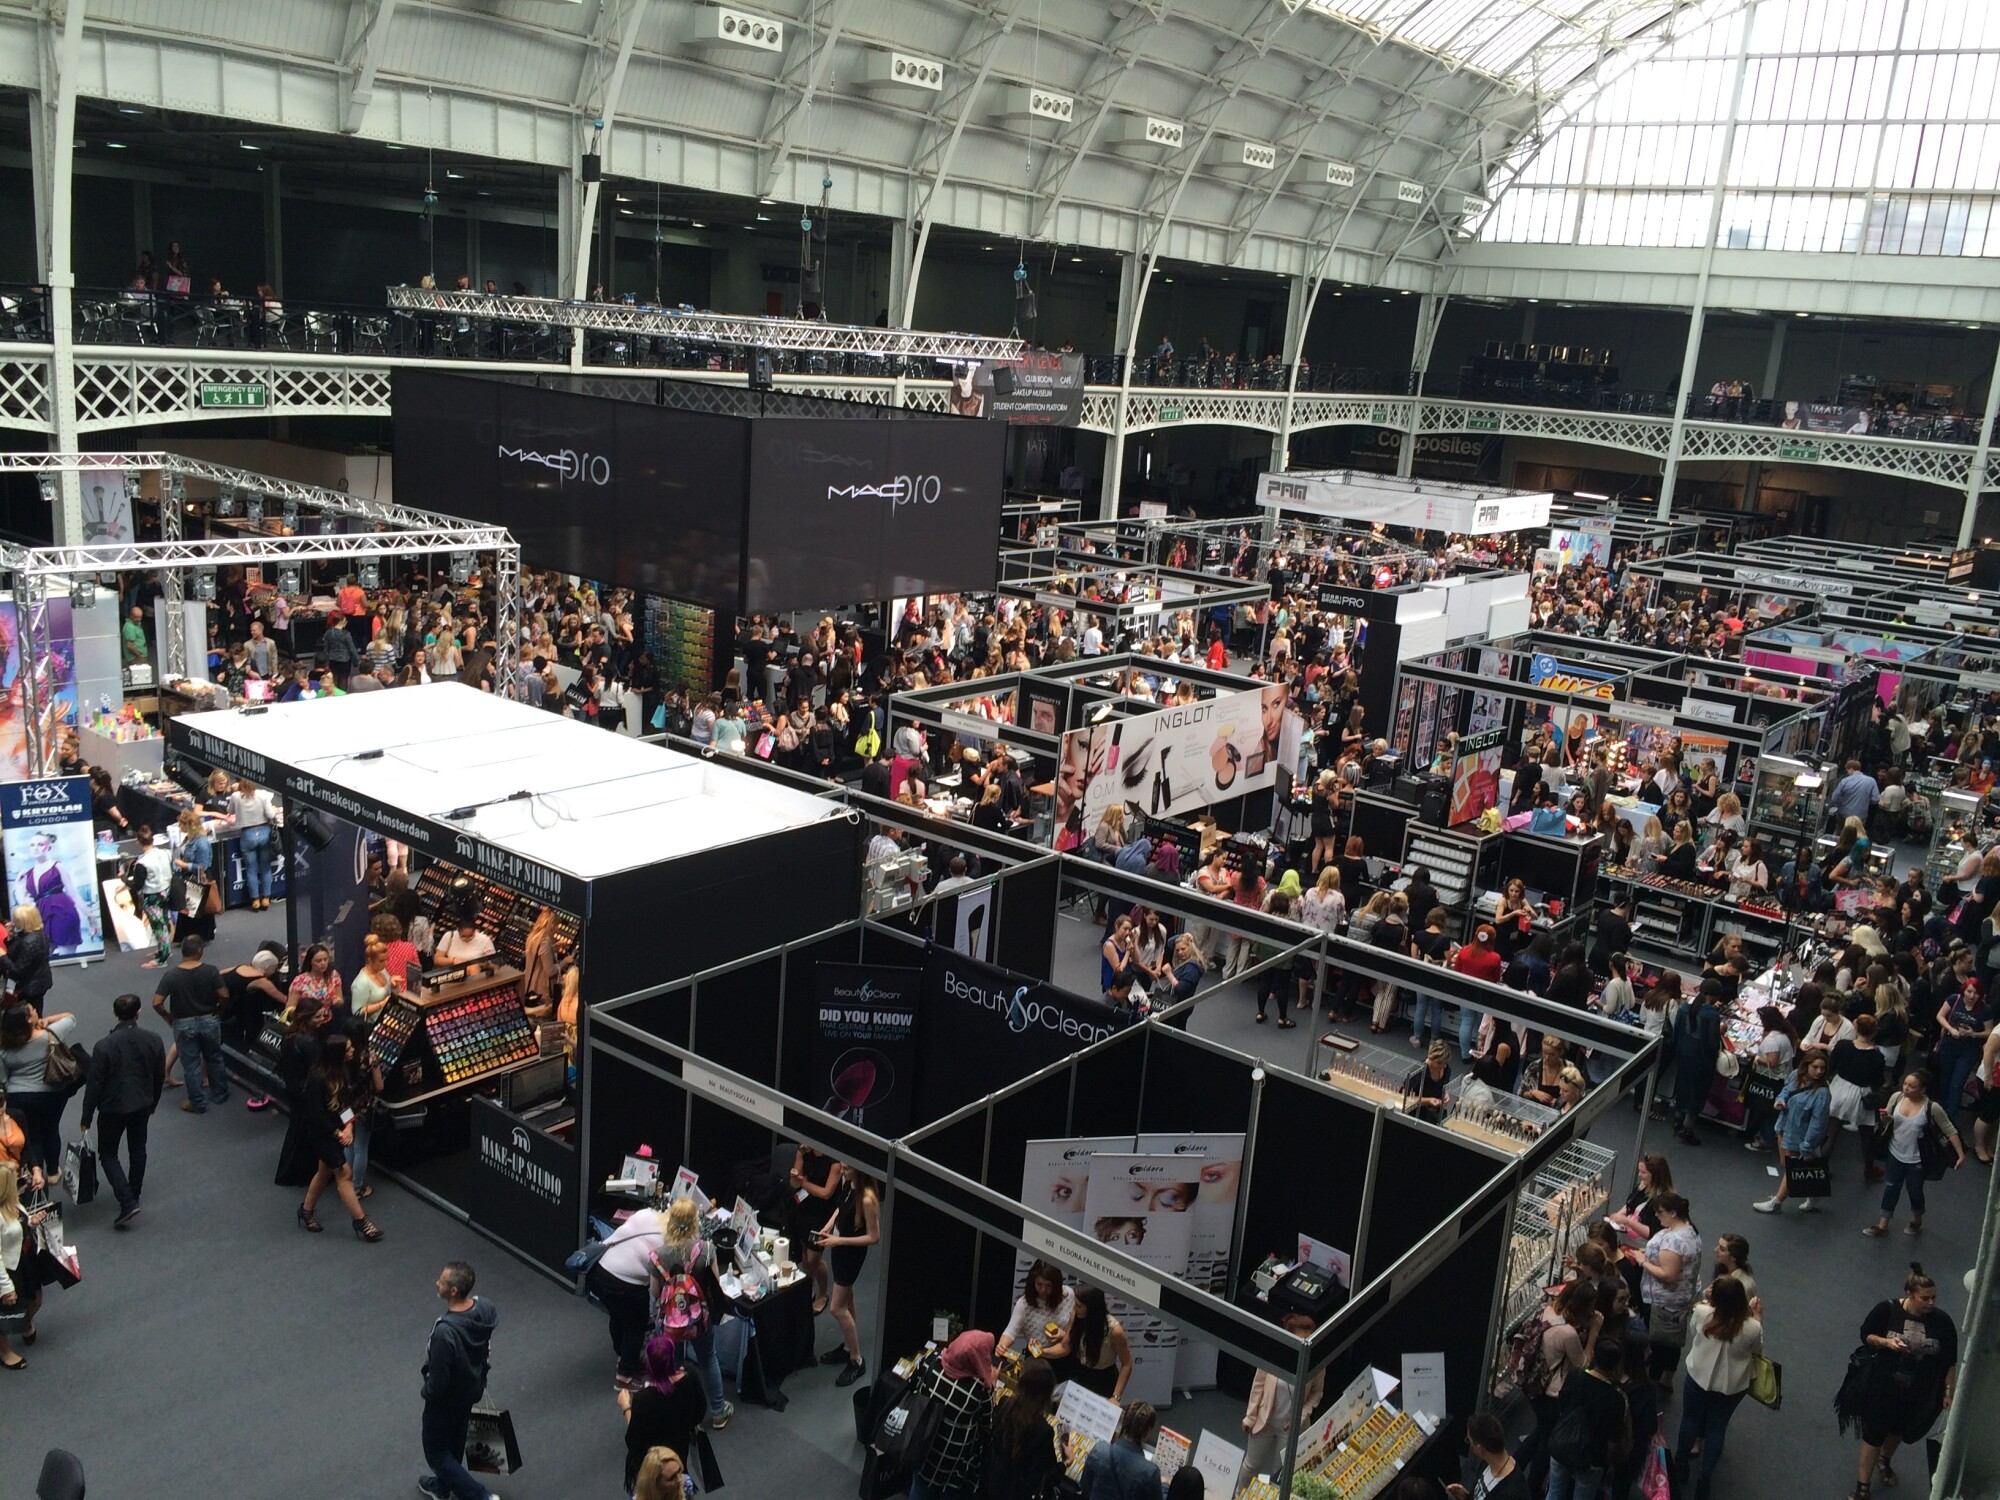 Trade Shows, Expos, and Conferences: What Are the Differences?